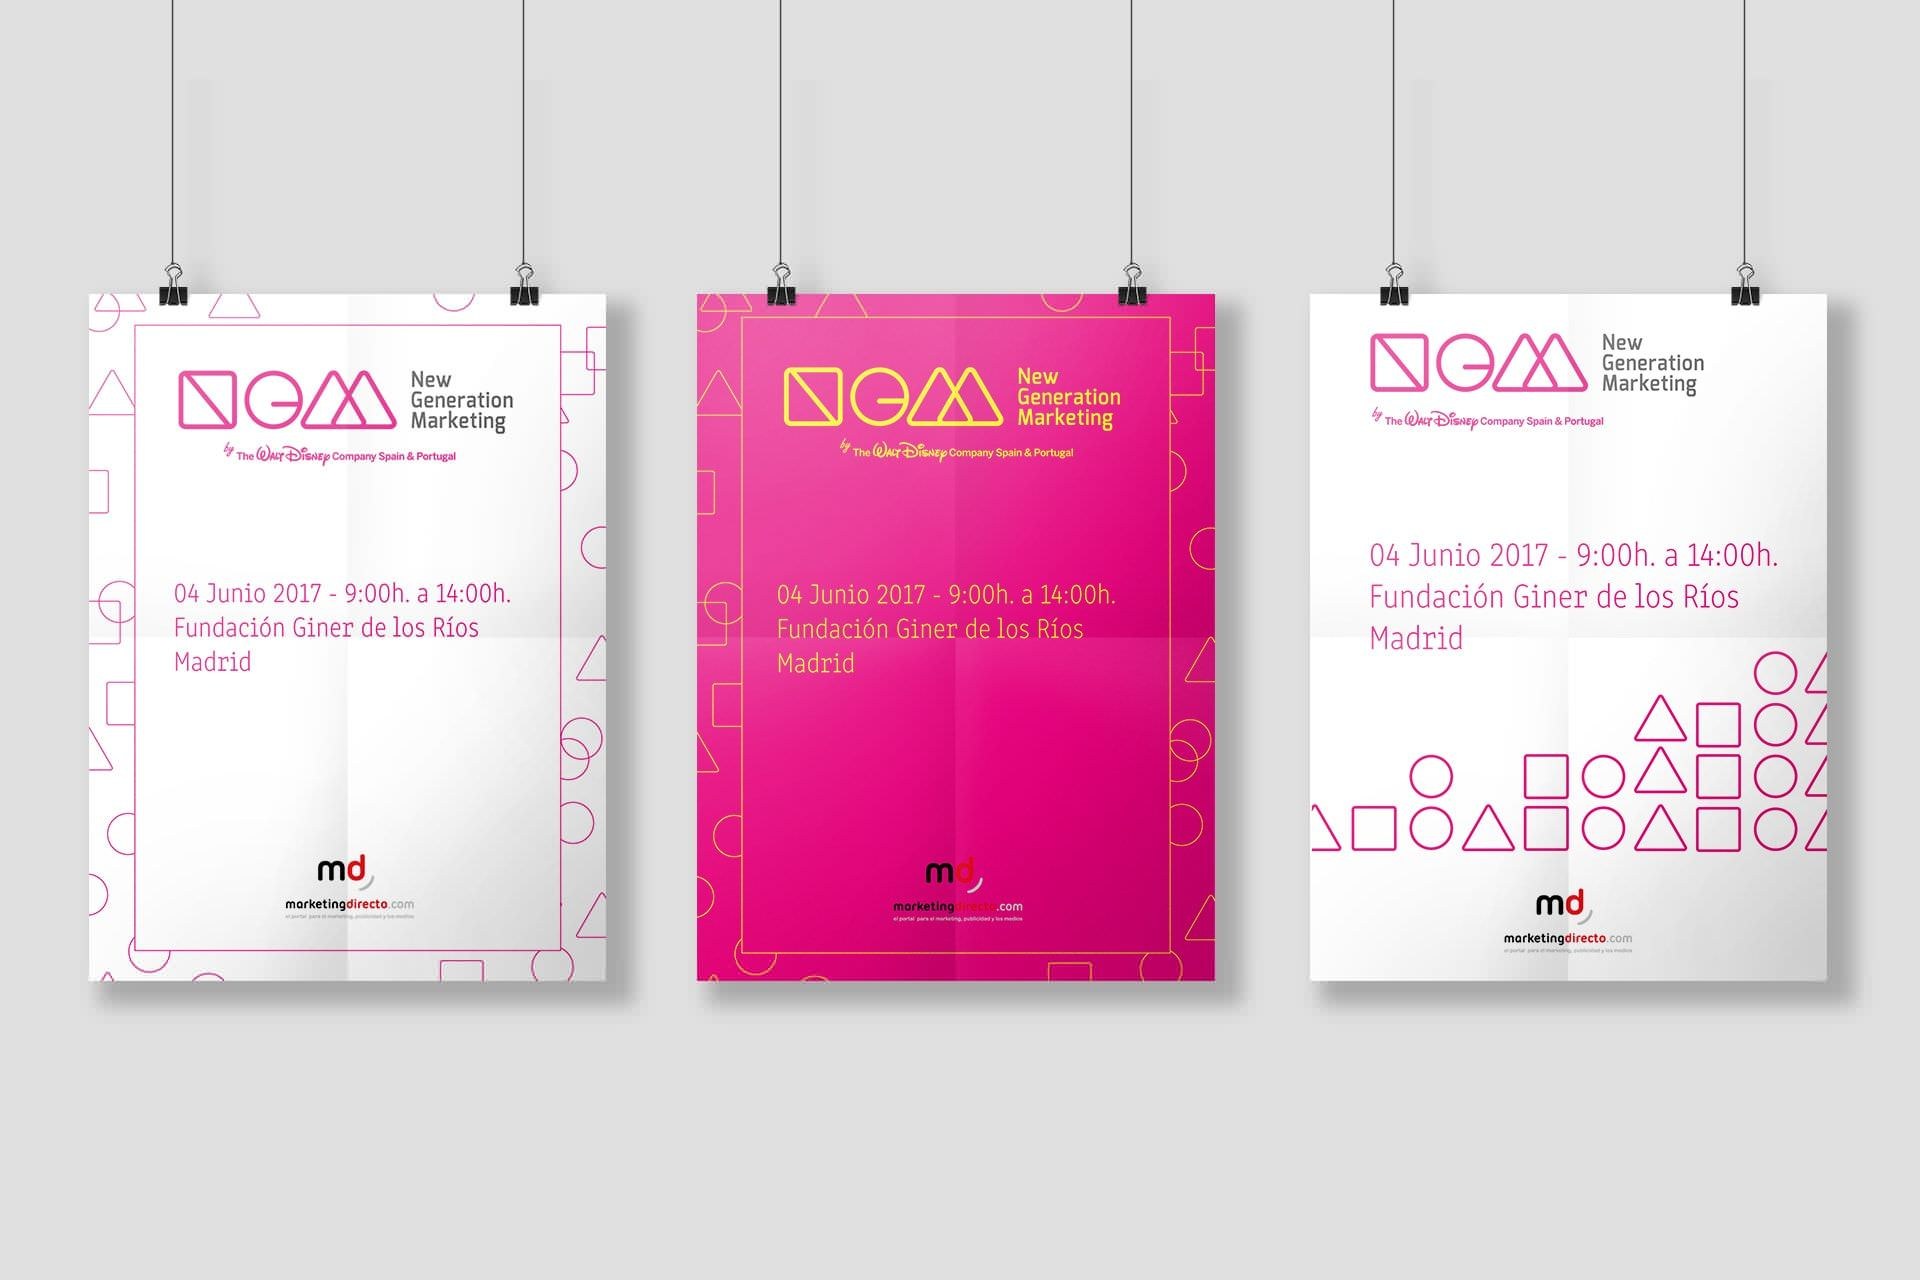 Diseño de folleto para el evento New Generation Marketing